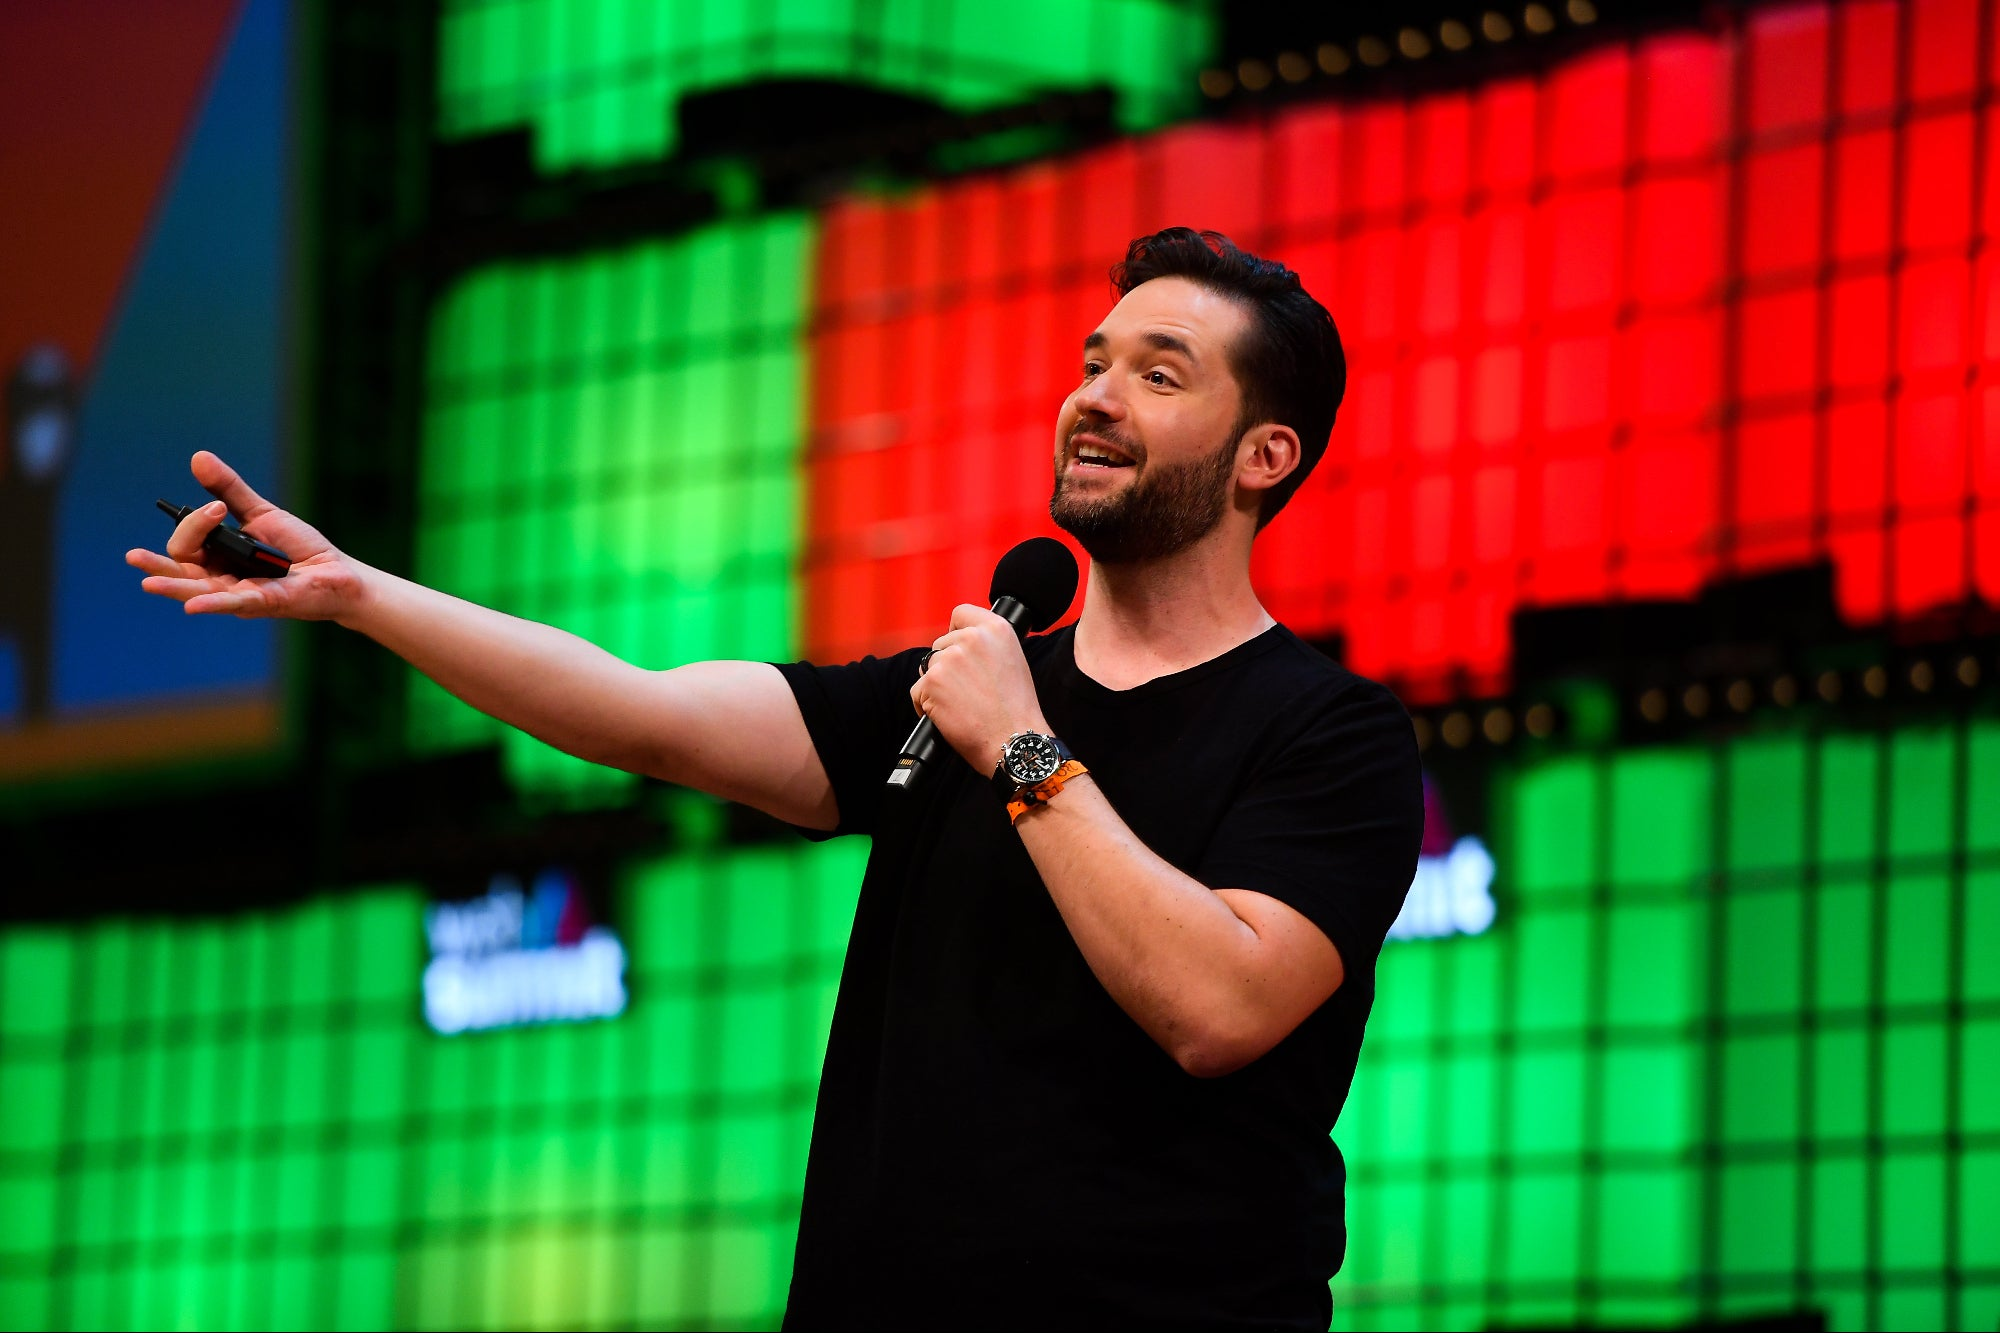 Alexis Ohanian's Resignation from Reddit is the Type of Leadership the World Needs